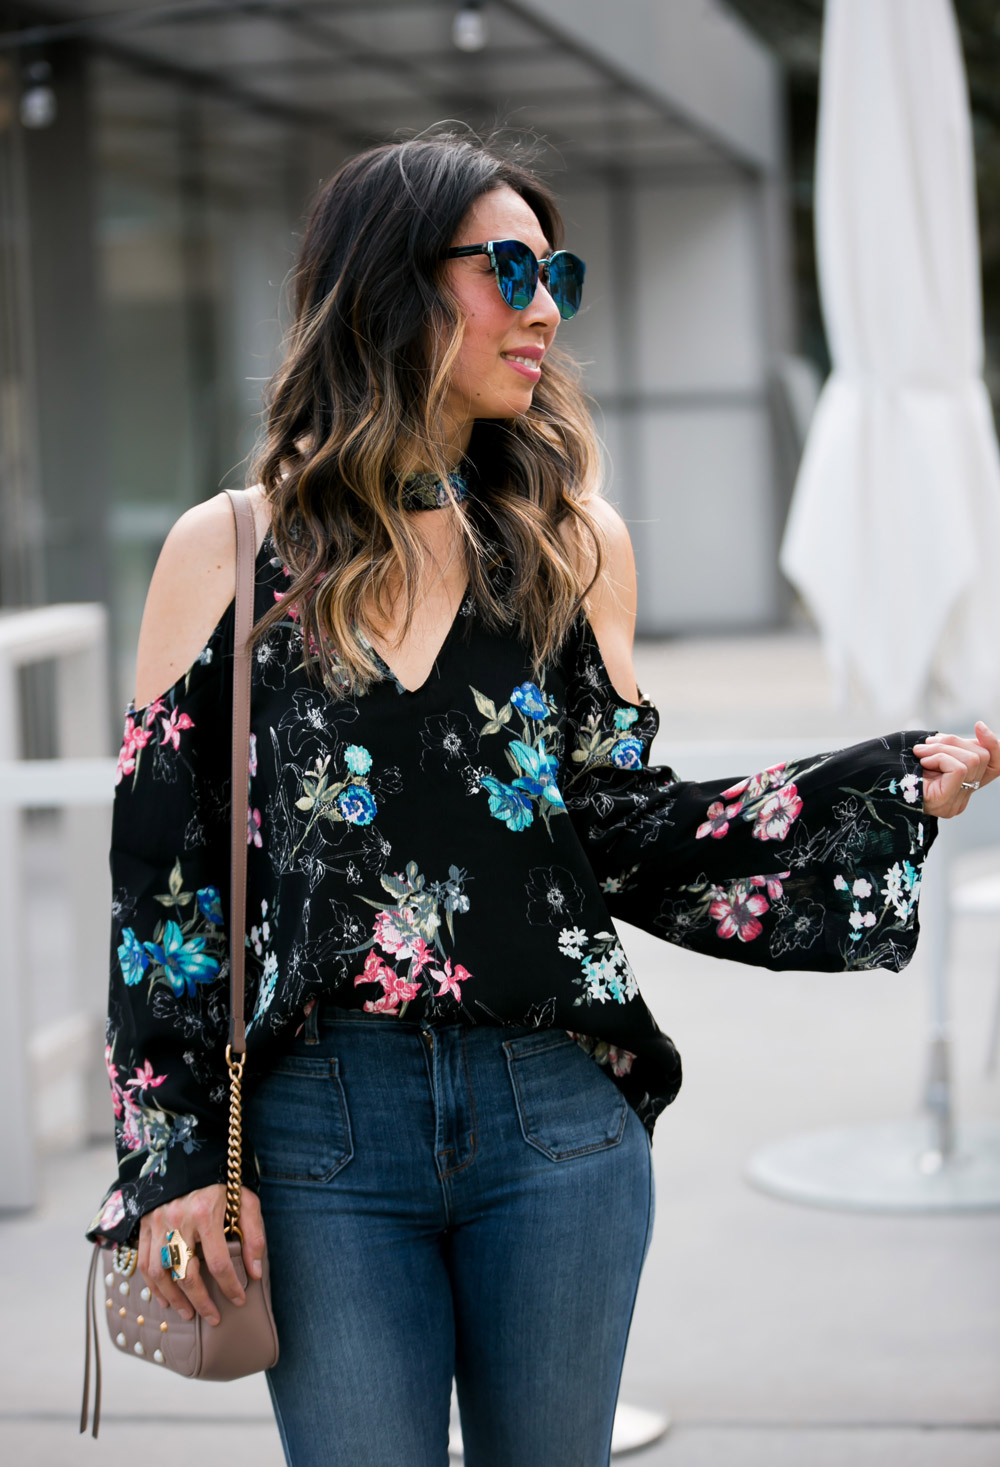 cold shoulder bell sleeve dark floral top wishing well acacia turquoise ring gucci pearl marmont bag